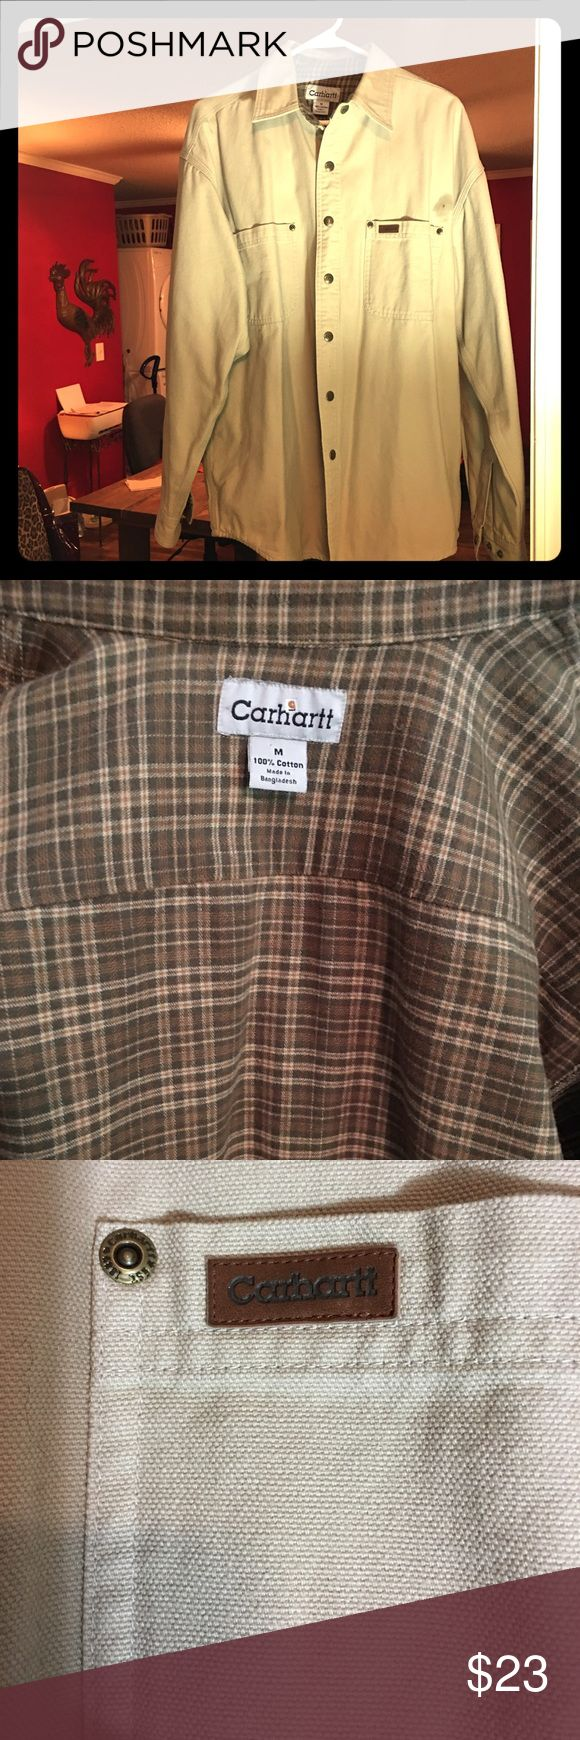 Men's Carhart Heavyweight shirt/jacket SZ Medium Plaid flannel type interior and beige exterior with snap buttons. Very warm and like new. It just doesn't often get cold enough in Alabama to wear. Men's Medium 👕👖👕 Carhartt Jackets & Coats